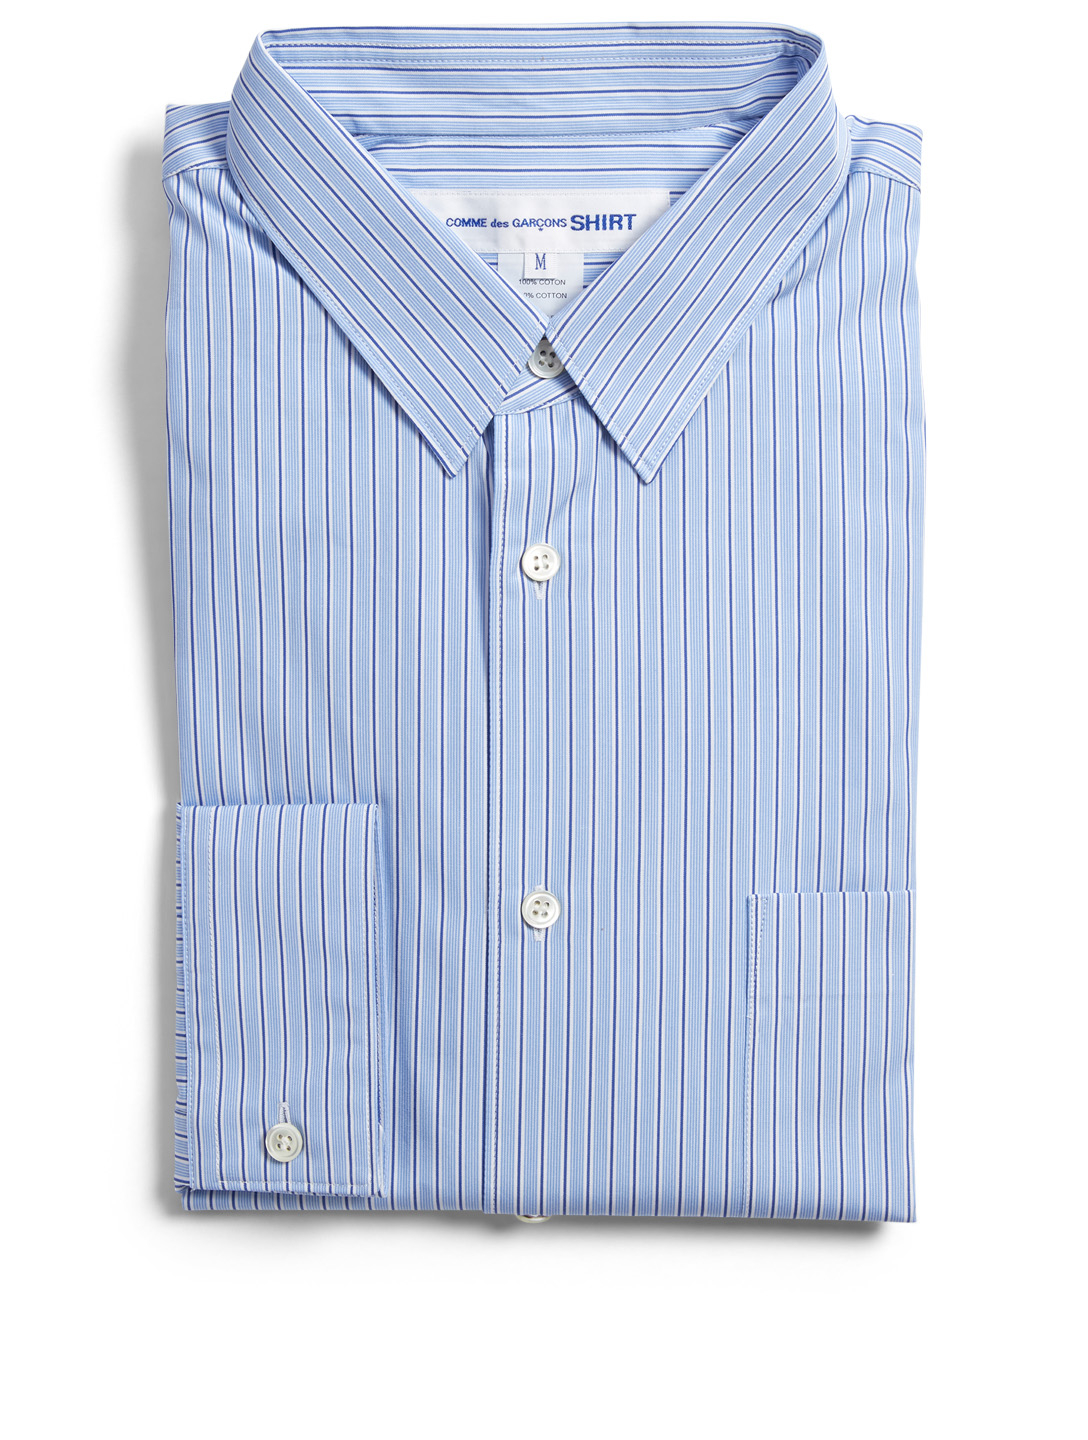 COMME DES GARÇONS SHIRT Forever Wide Shirt In Stripe Men's Blue